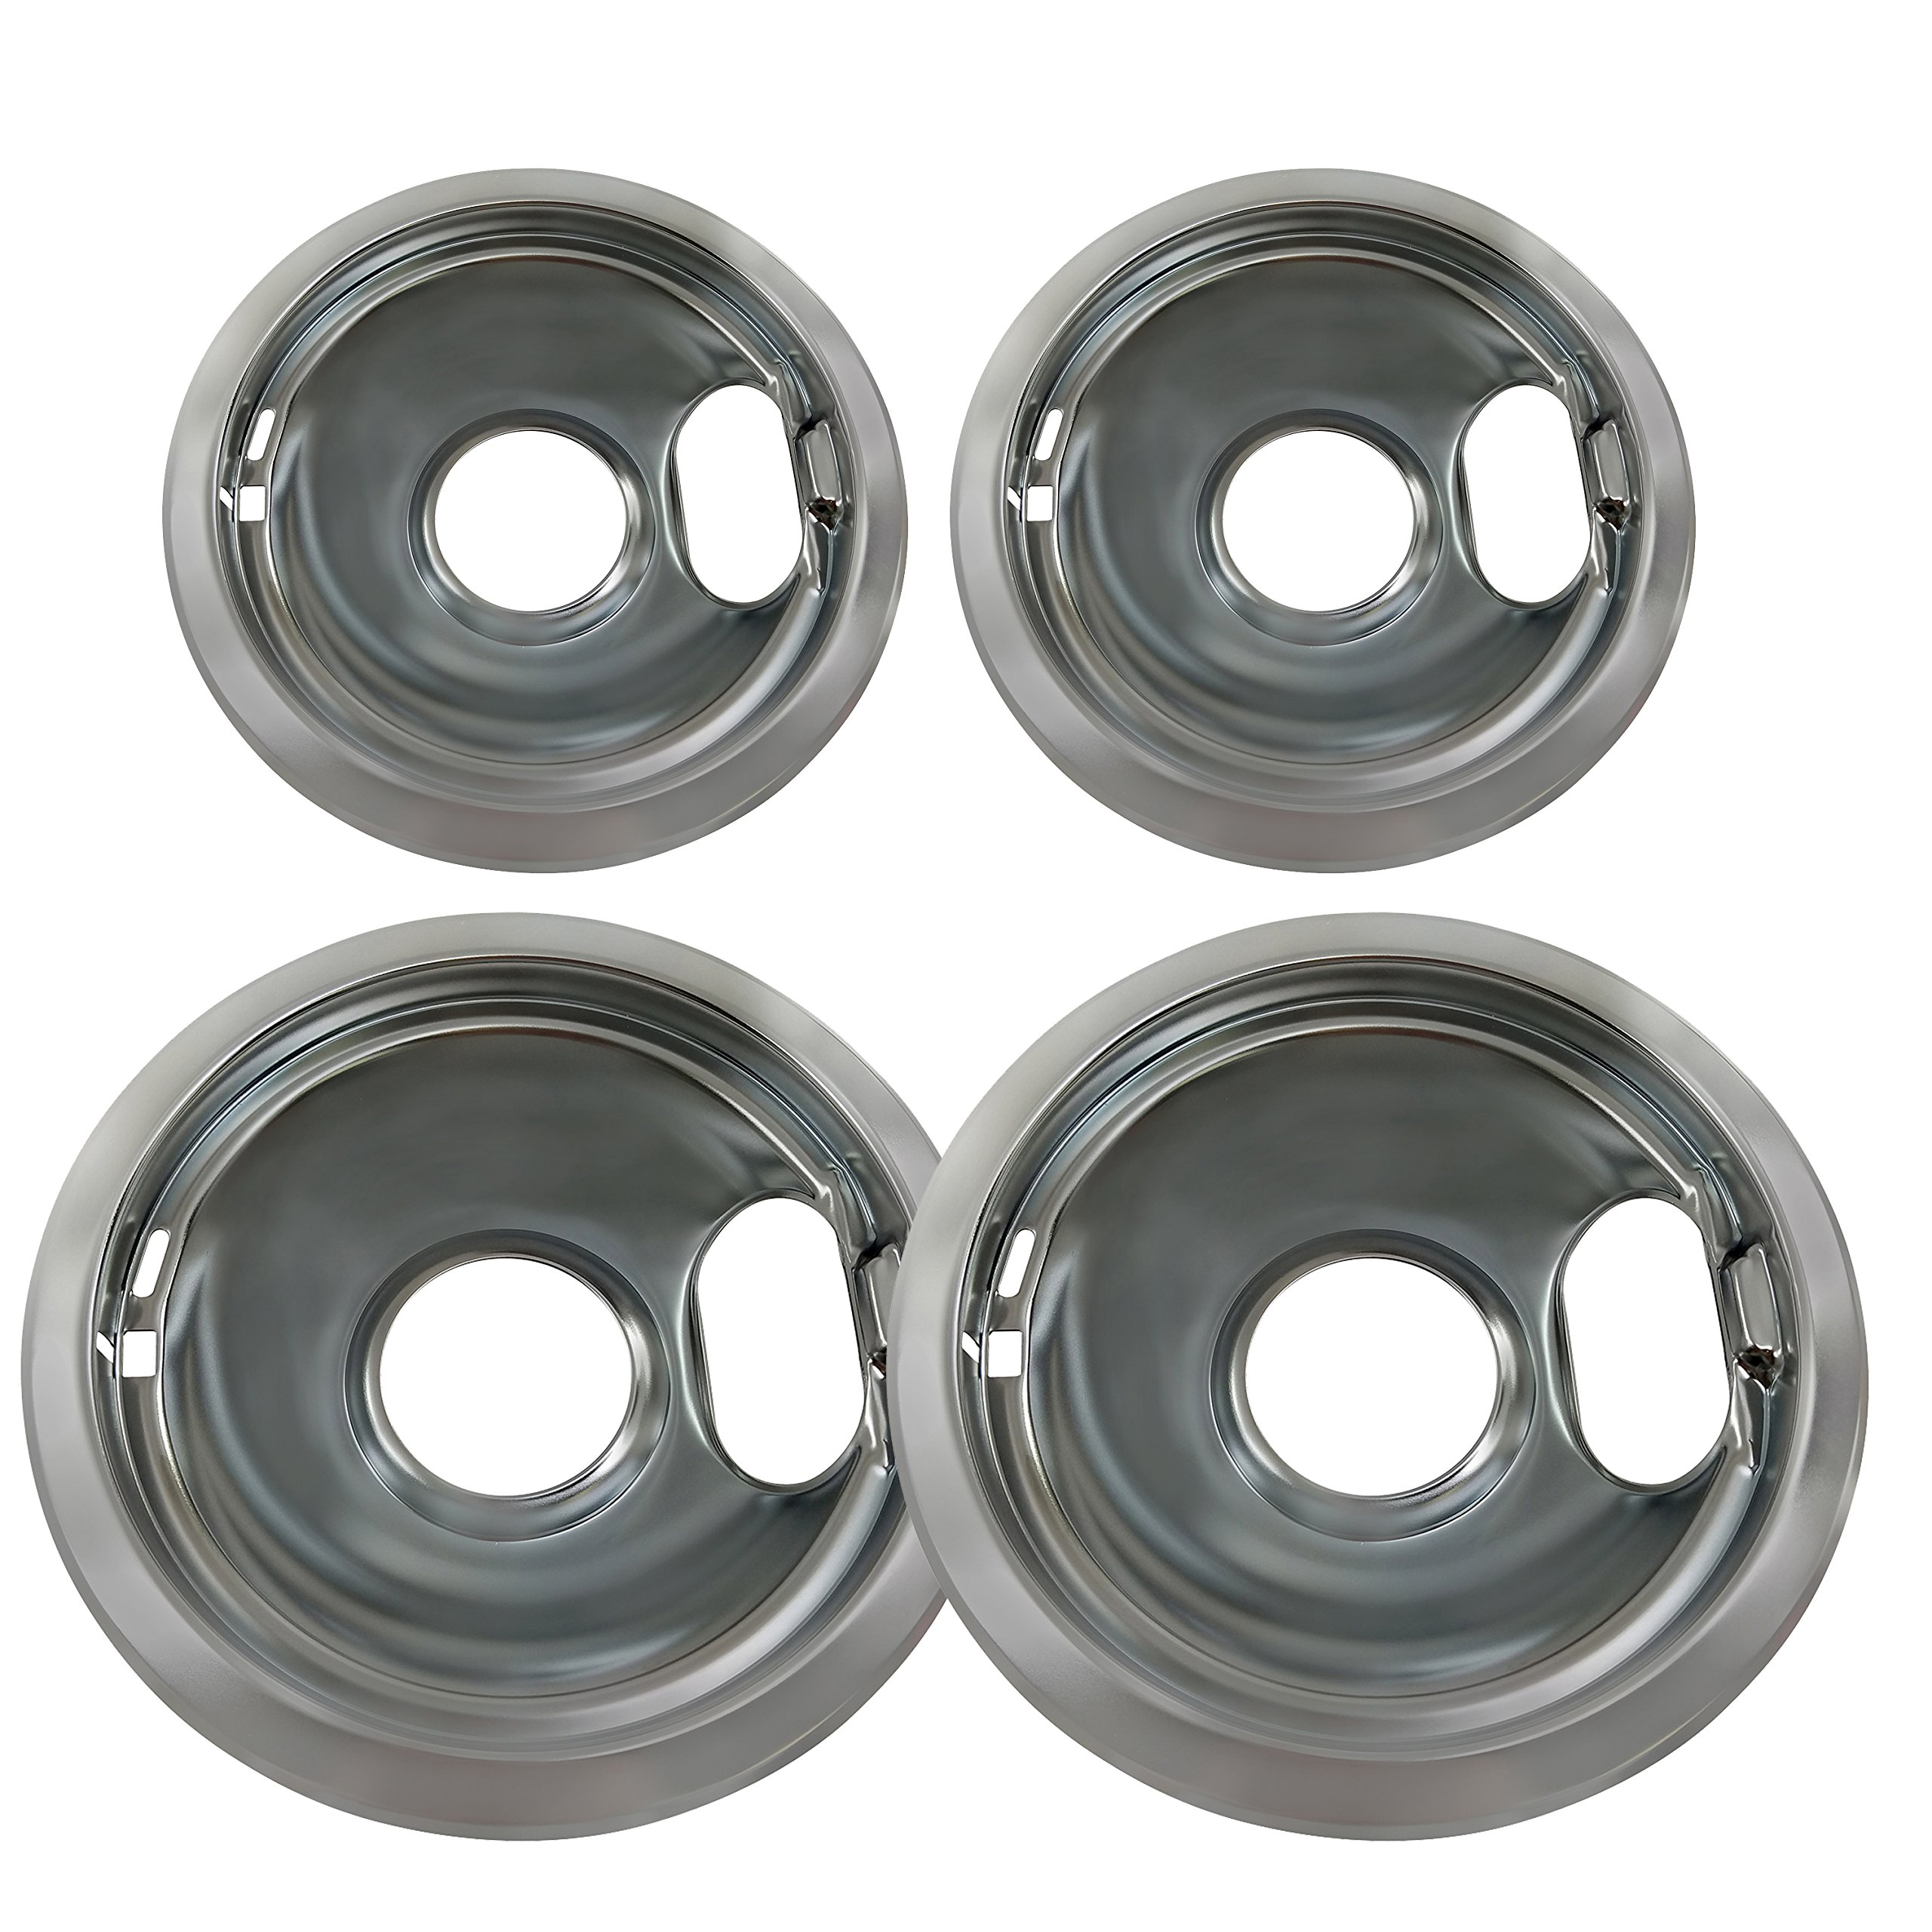 4 Pack Replacement for Whirlpool W10278125 Electric Range Chrome Reflector Bowls